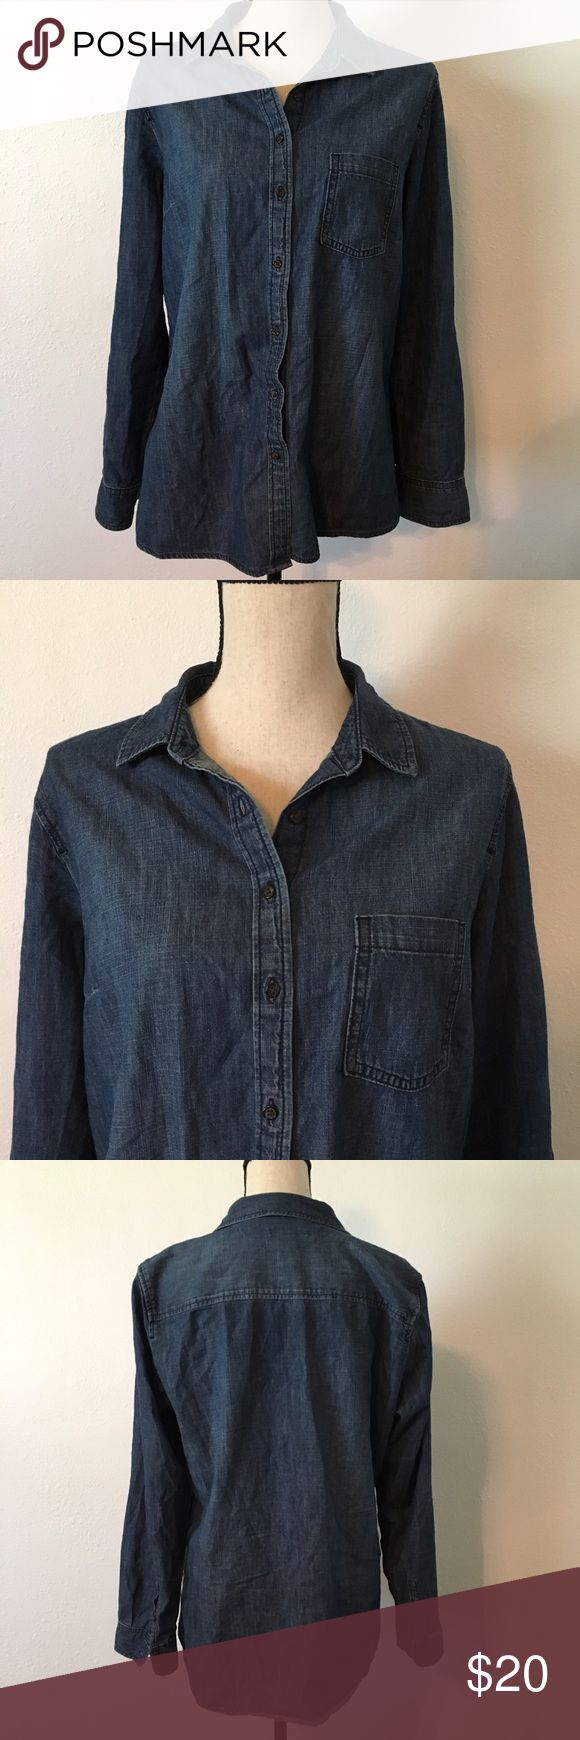 GAP Boyfriend Fit Denim Shirt In like new condition. So cute! make an offer(: if you like more than one item, ask me for a deal;) GAP Tops Button Down Shirts